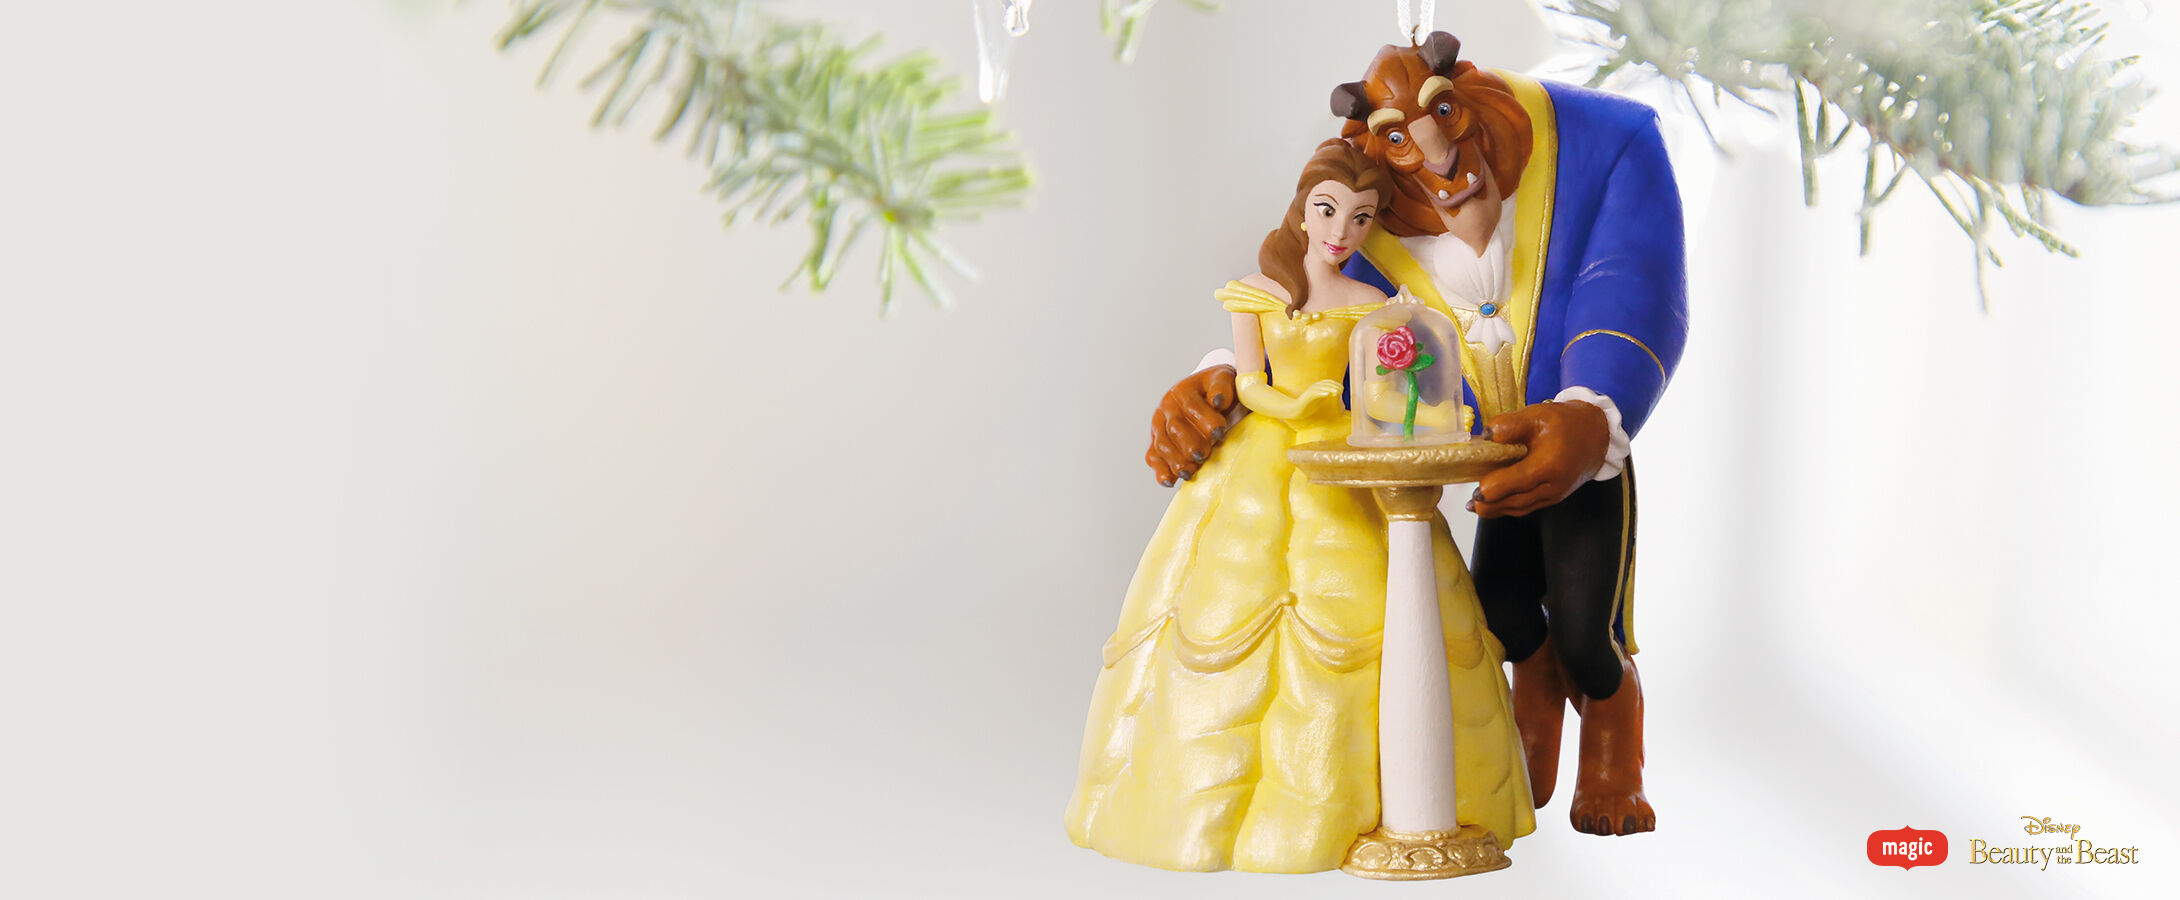 Beauty and the Beast magic Keepsake Ornament